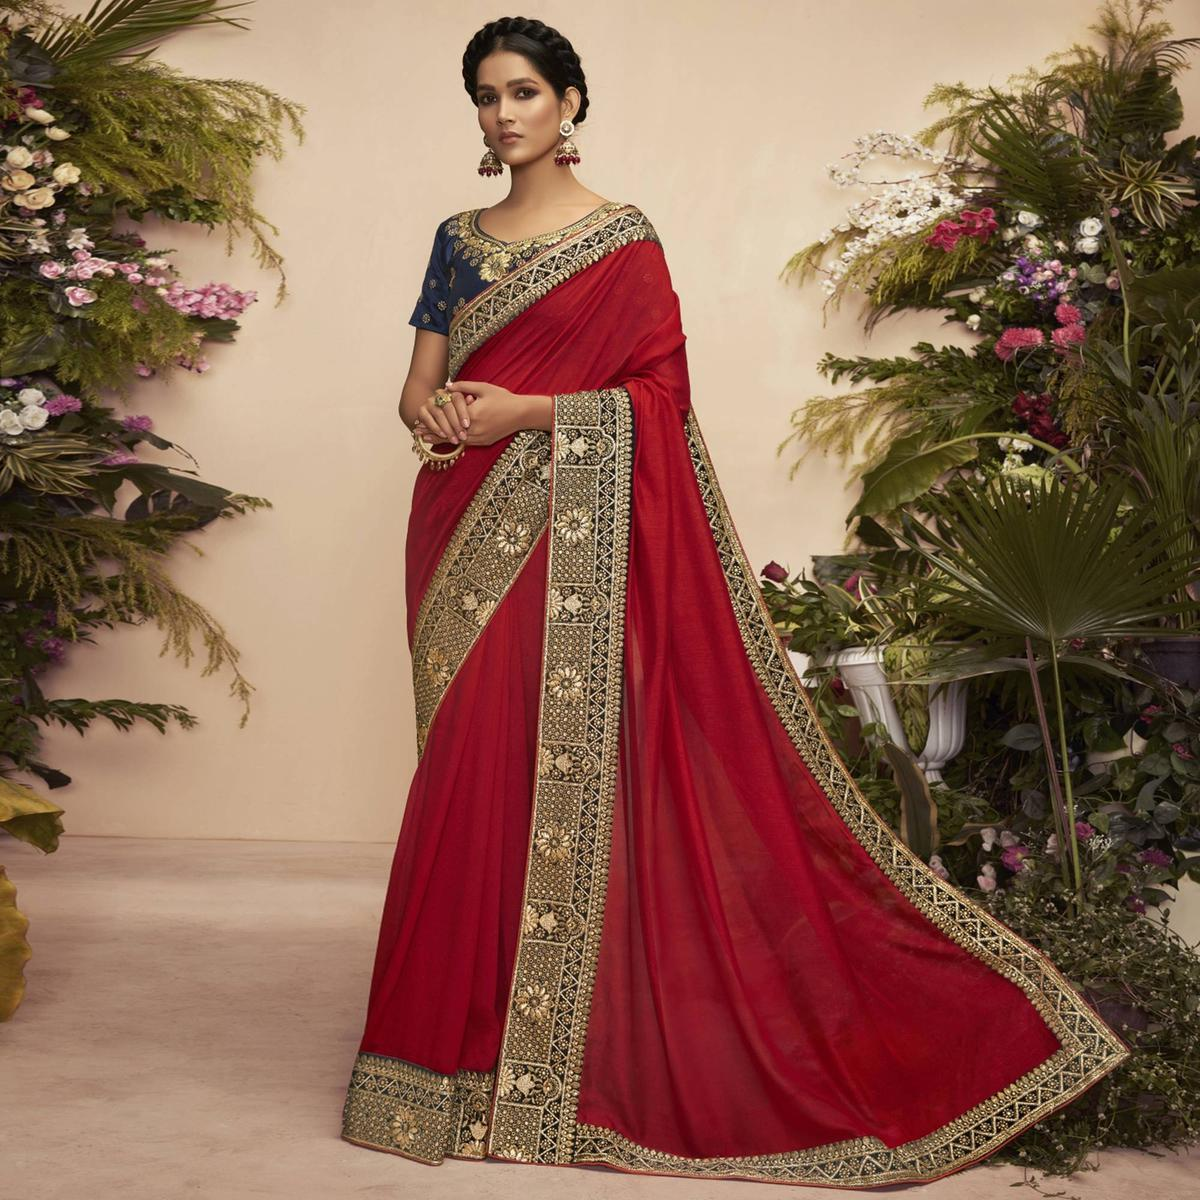 Triveni Red Color Chanderi silk Party Wear Saree With Blouse Piece